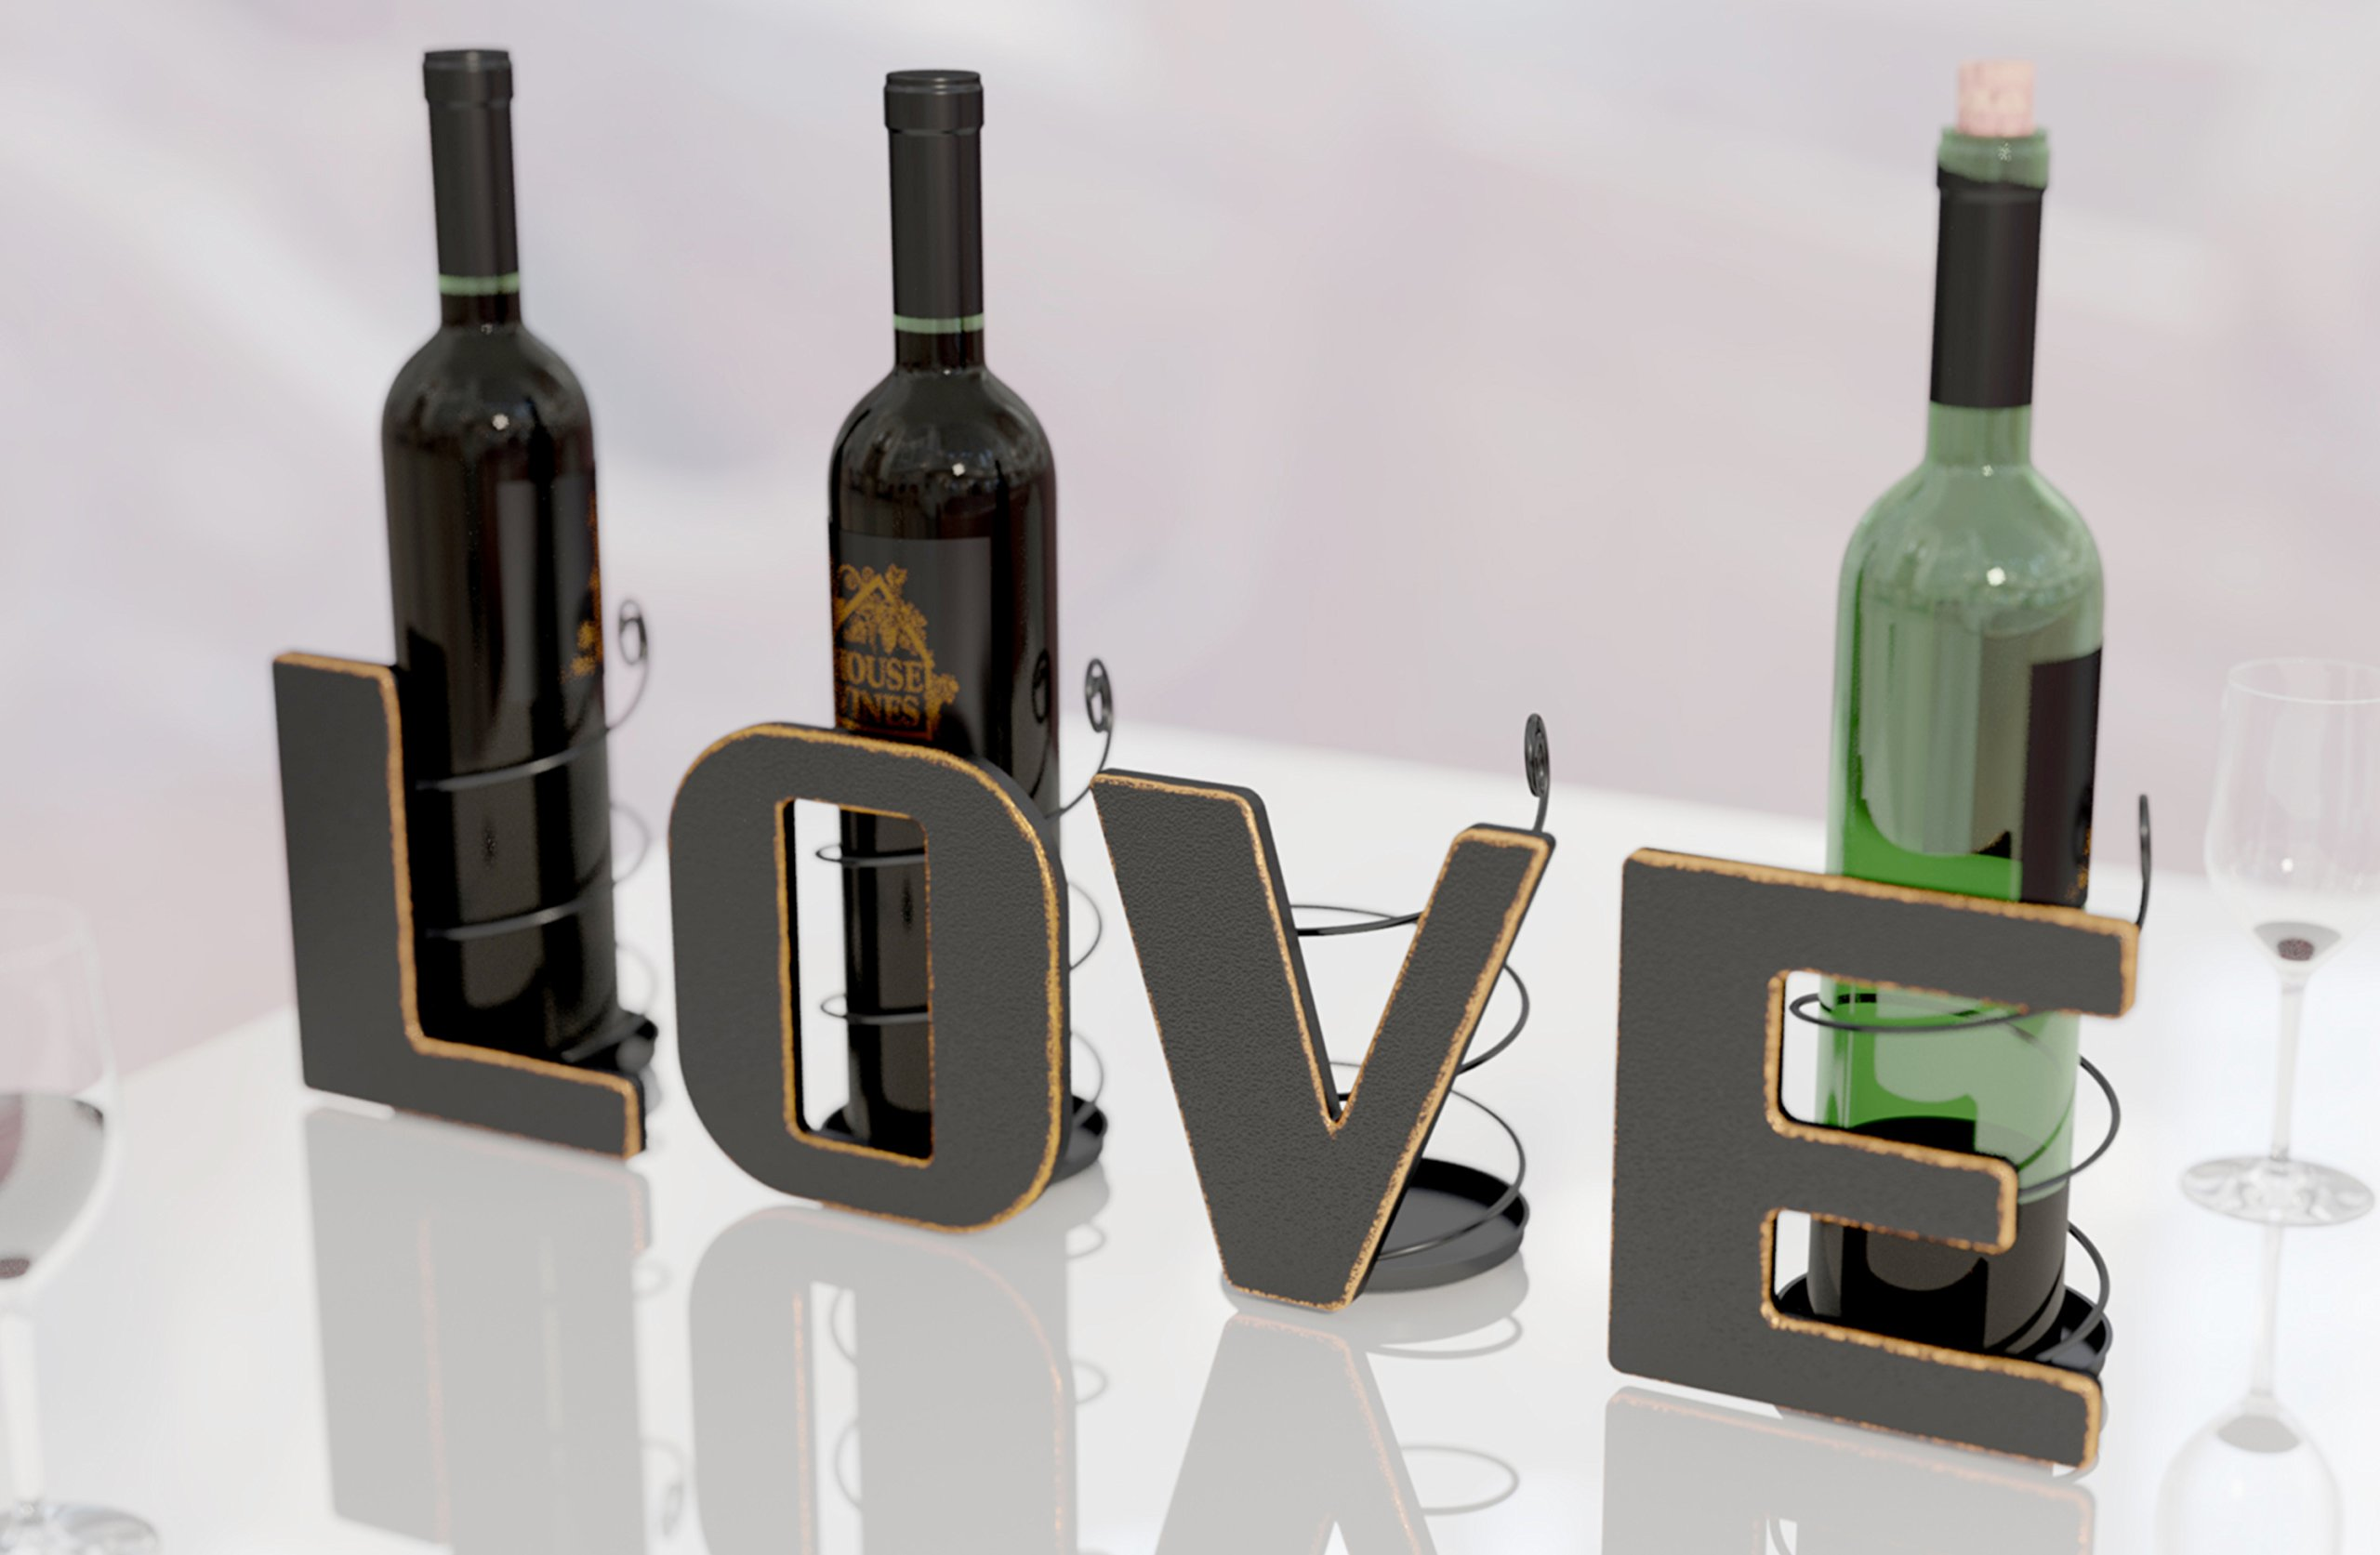 LOVE Letter Wine Bottle Holder Art Dcor